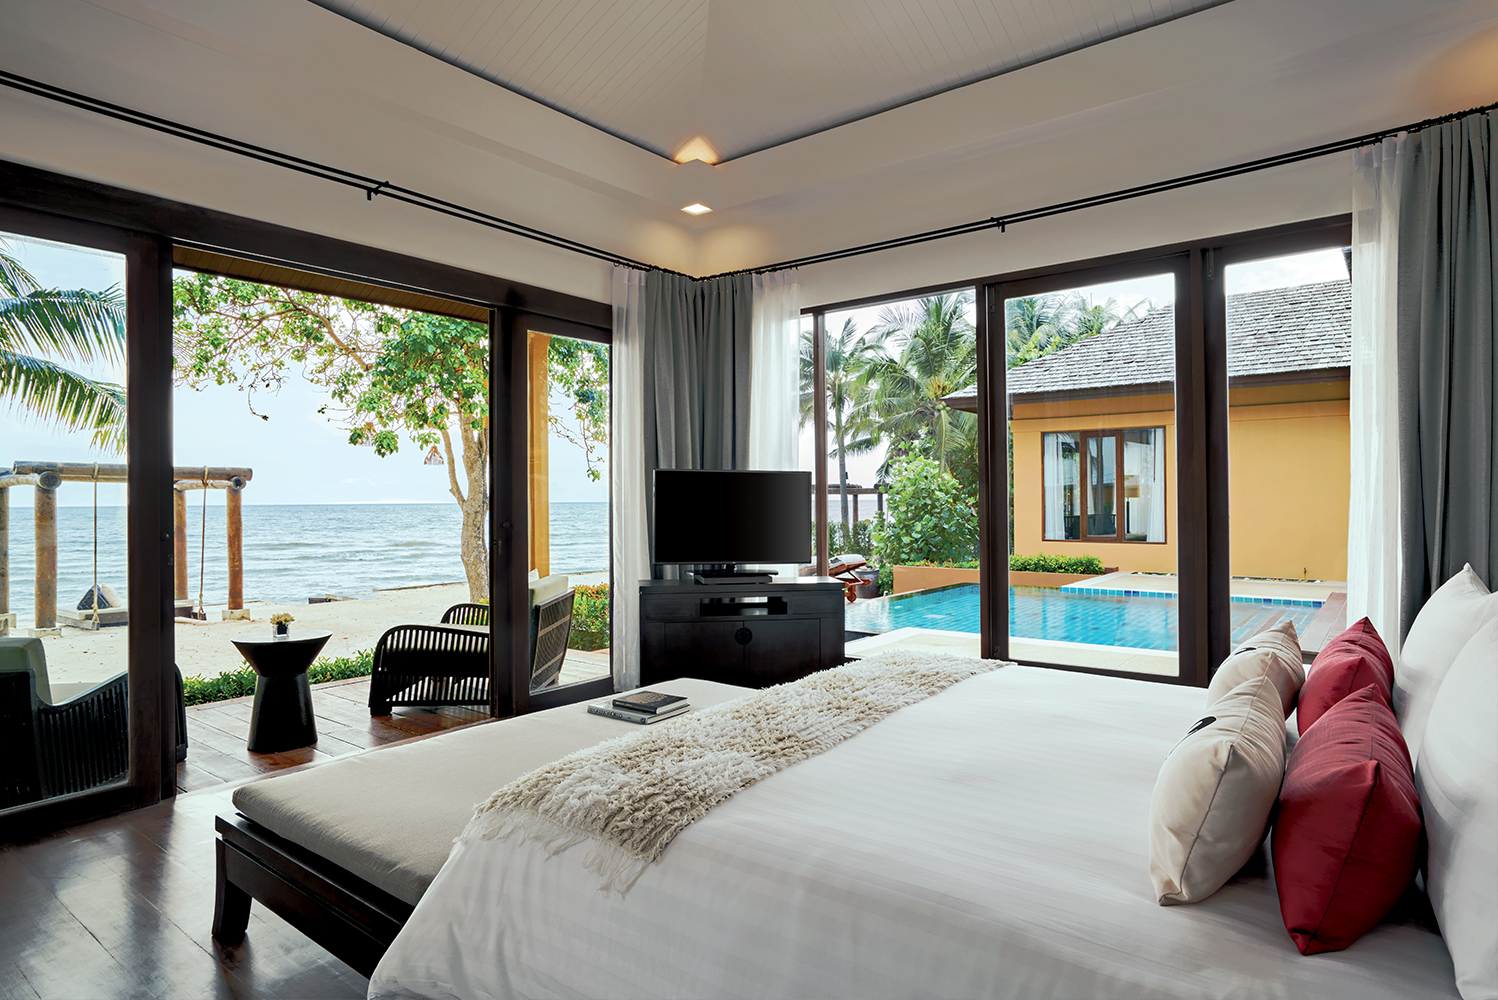 The five-star property – previously known as the Asara Villa & Suite Hua Hin – underwent a complete rebranding and refurbishment.